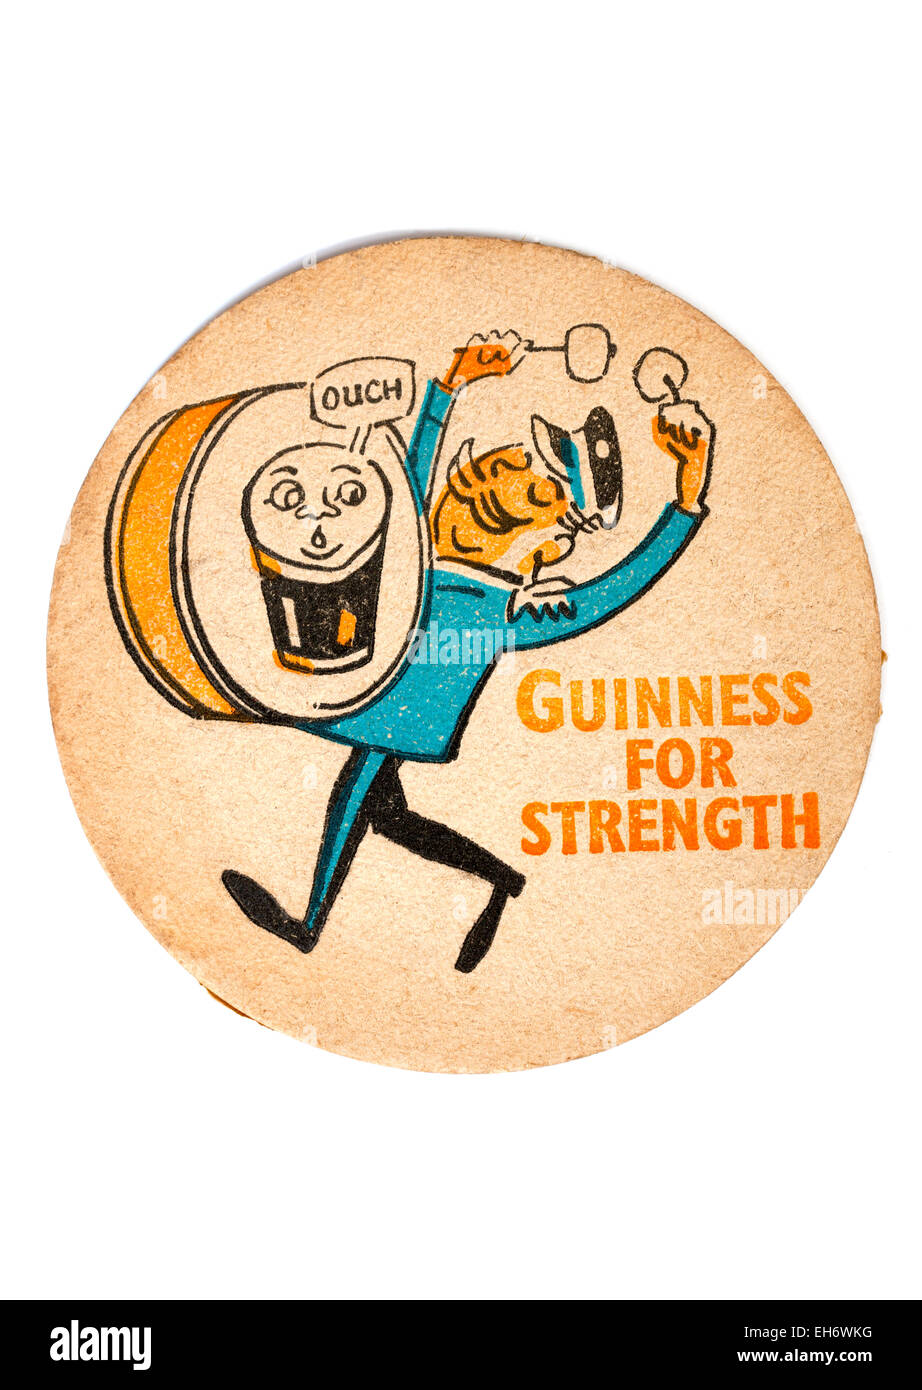 Vintage British Beermat Advertising Guinness For Strength - Stock Image